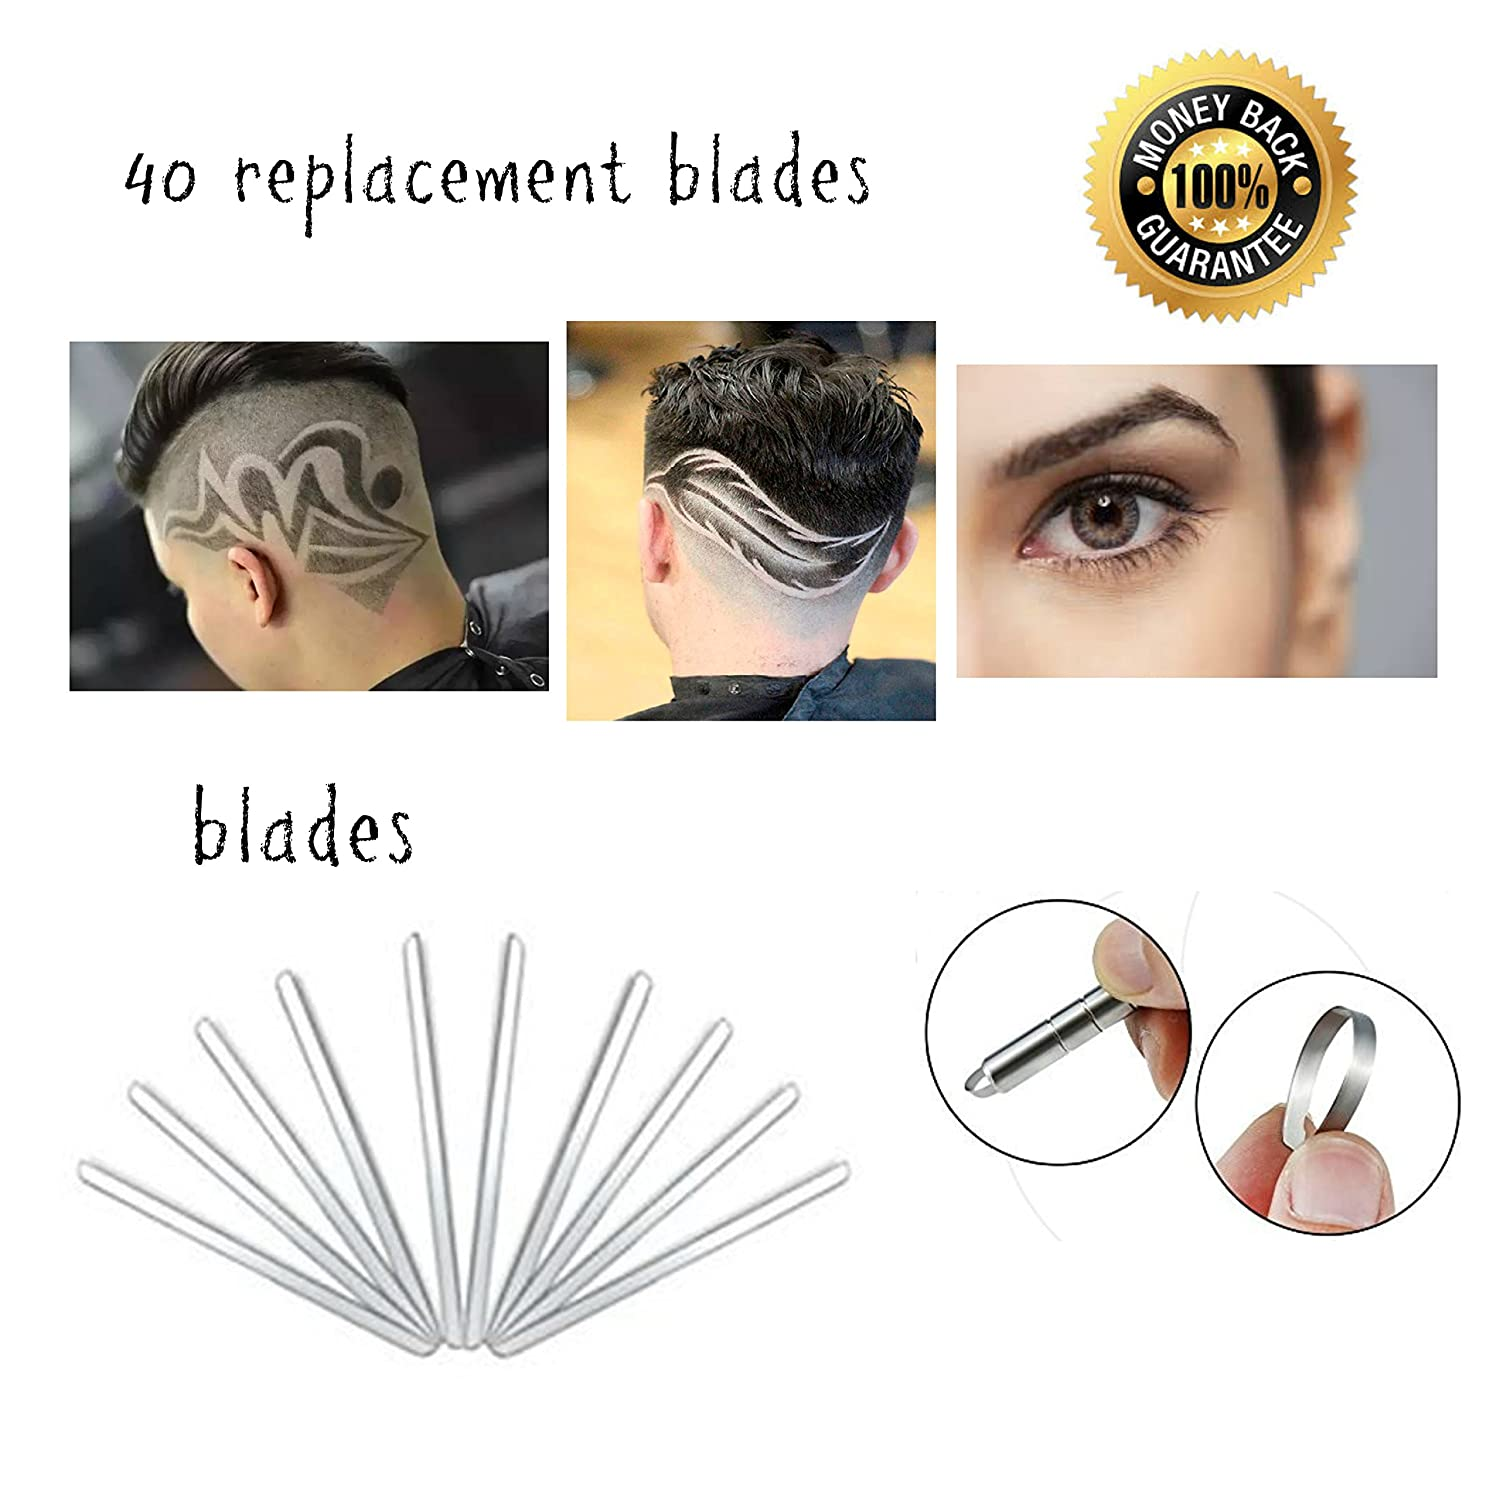 40pcs Replacement Blades Stainless Steel For Hair Tattoo Pen and Hair Engraving Shaver Eyebrow Trimming Barber Razors Hair Styling Designs For Men Women Children LuNic